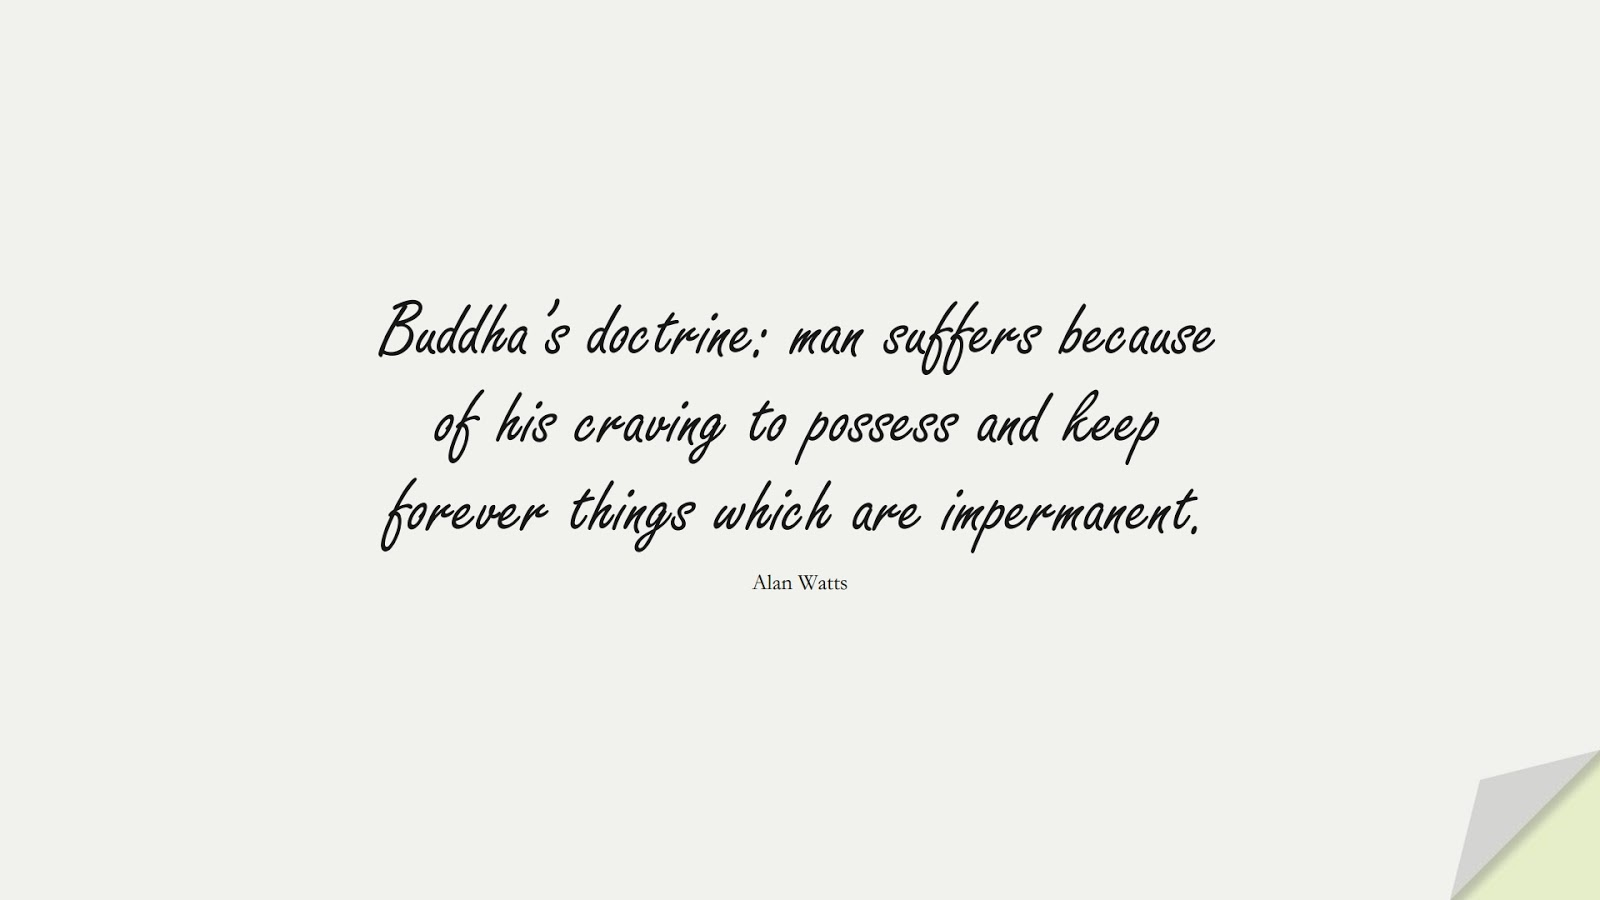 Buddha's doctrine: man suffers because of his craving to possess and keep forever things which are impermanent. (Alan Watts);  #DepressionQuotes